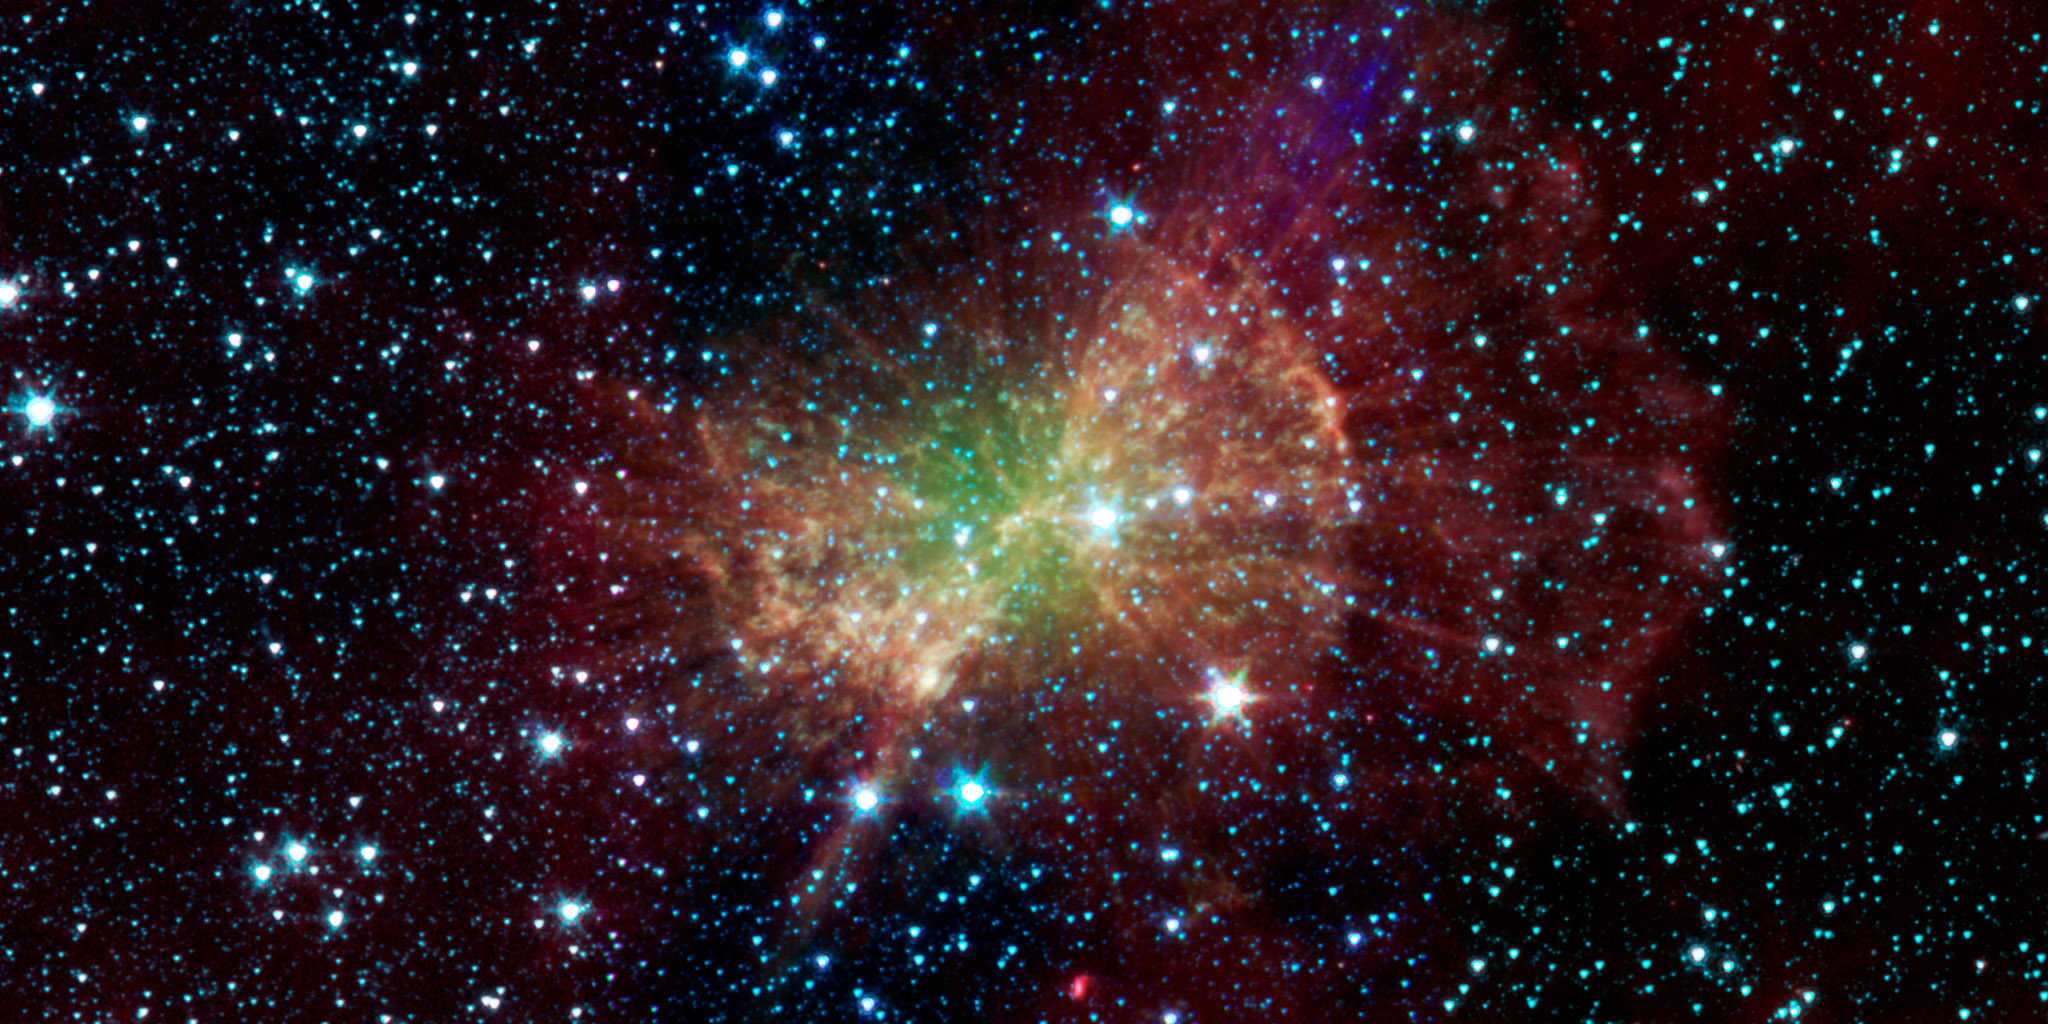 m27_spitzerspacetelescope_nasa